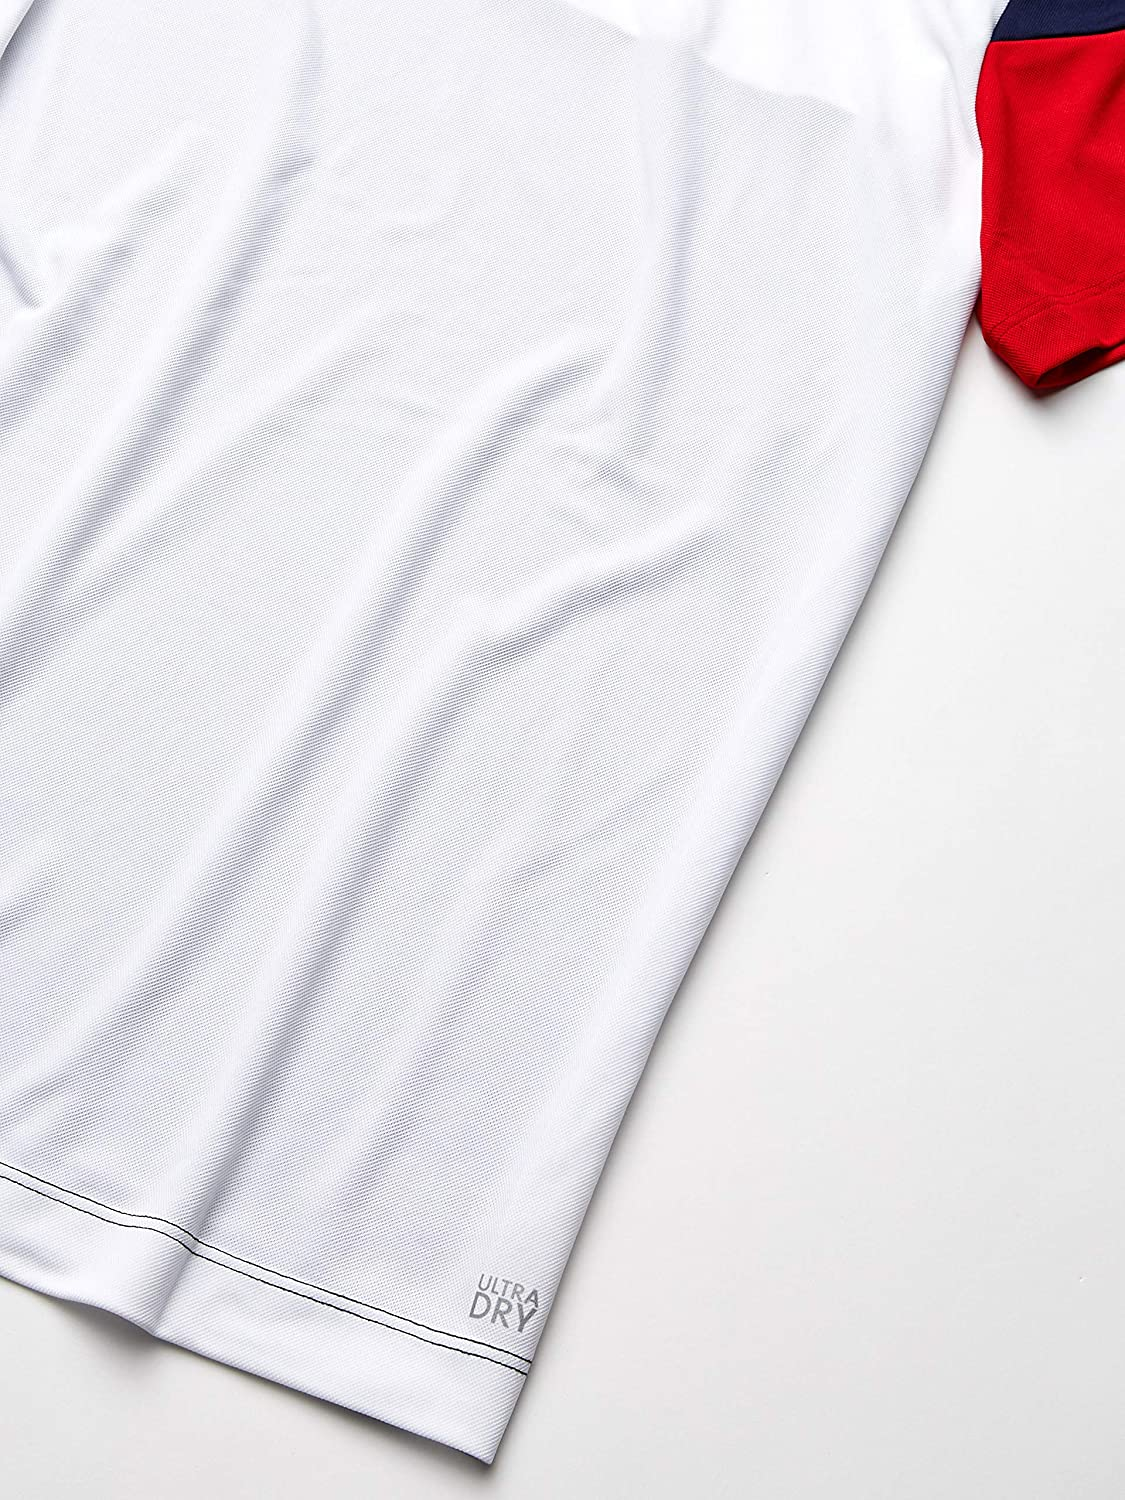 Lacoste Mens Sport Short Sleeve Ultra Dry Technical Color Blocked T-Shirt